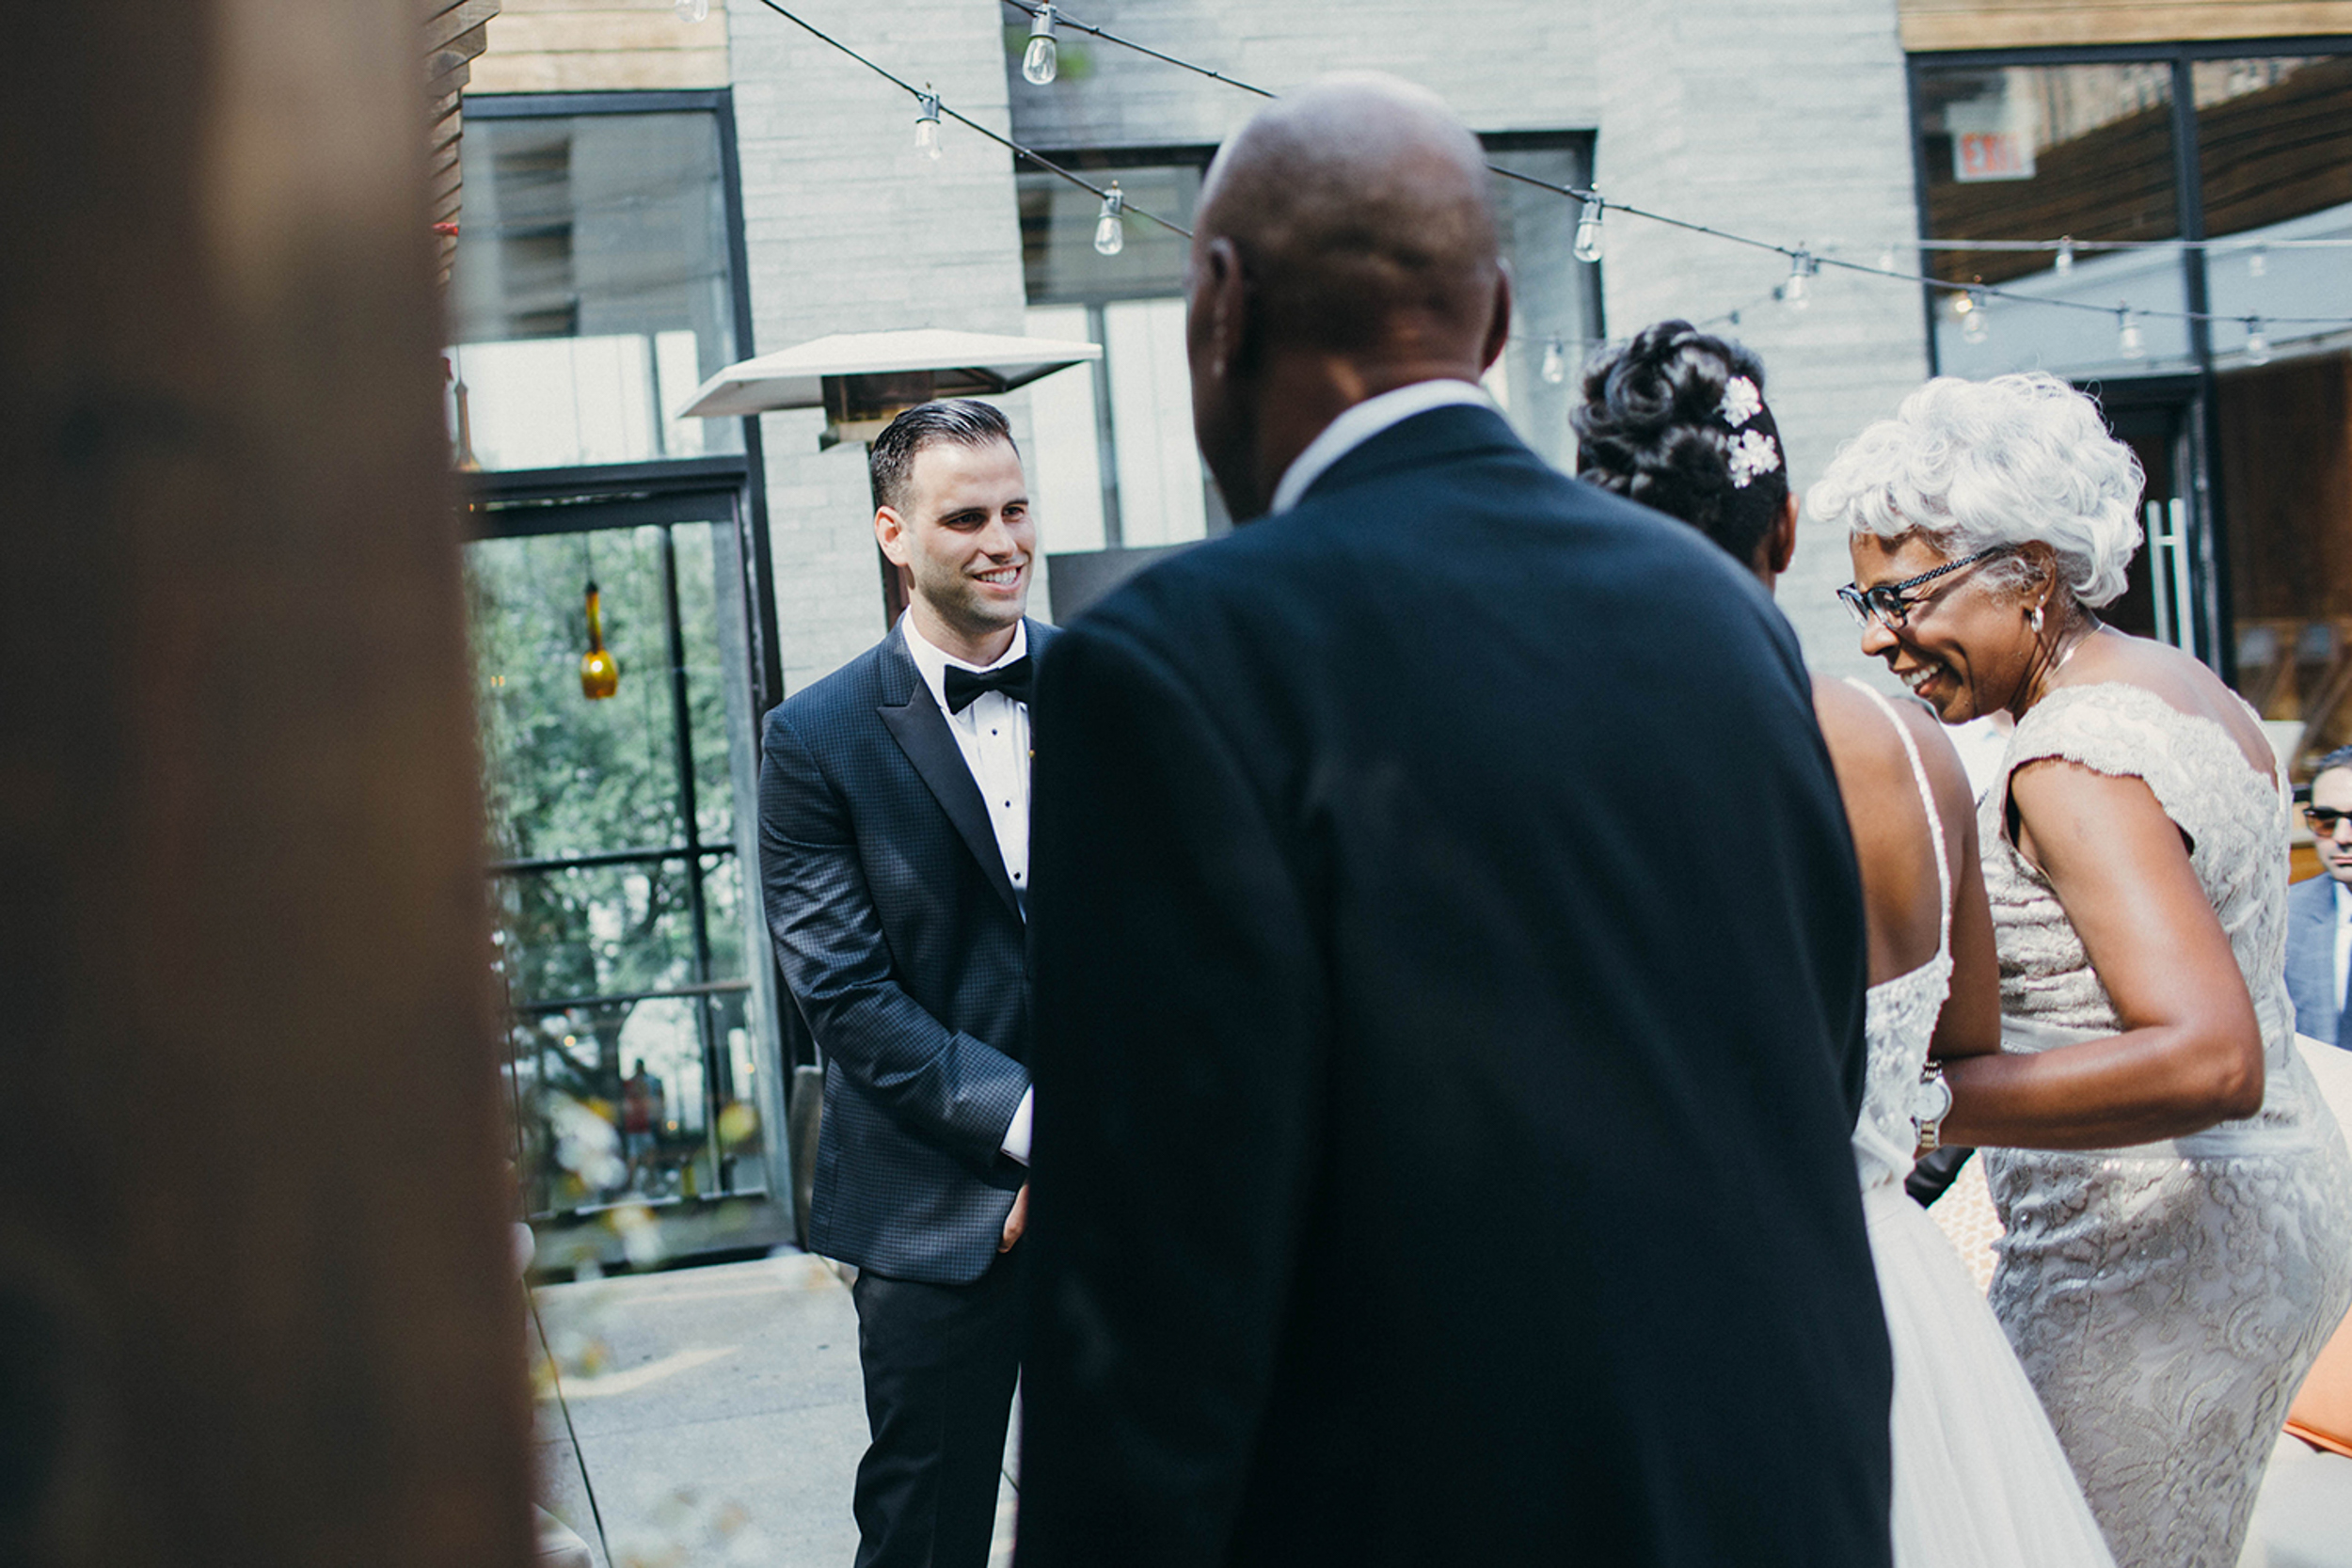 chicago.wedding.urban.intimate.zed451.lake.milton olive park-46.jpg